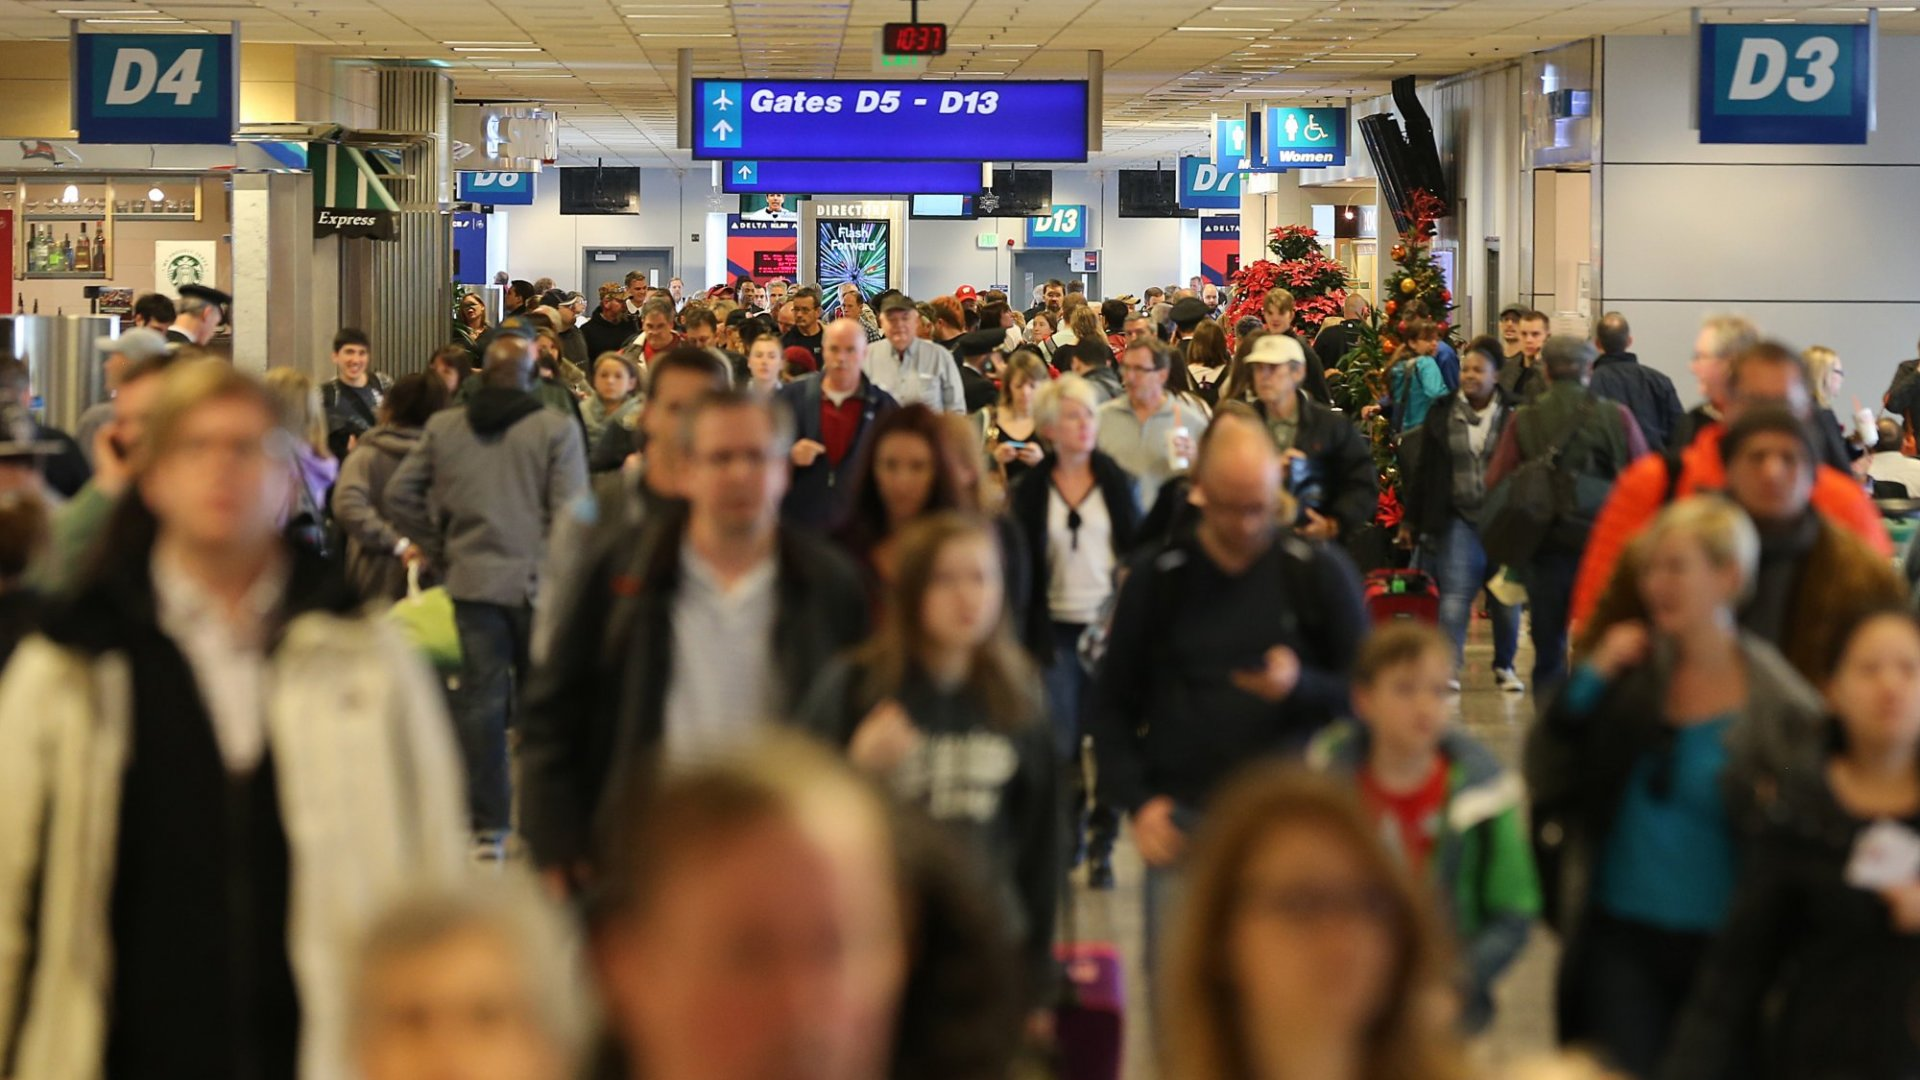 Want to Avoid Delays This Thanksgiving? Steer Clear of These Airports and Airlines